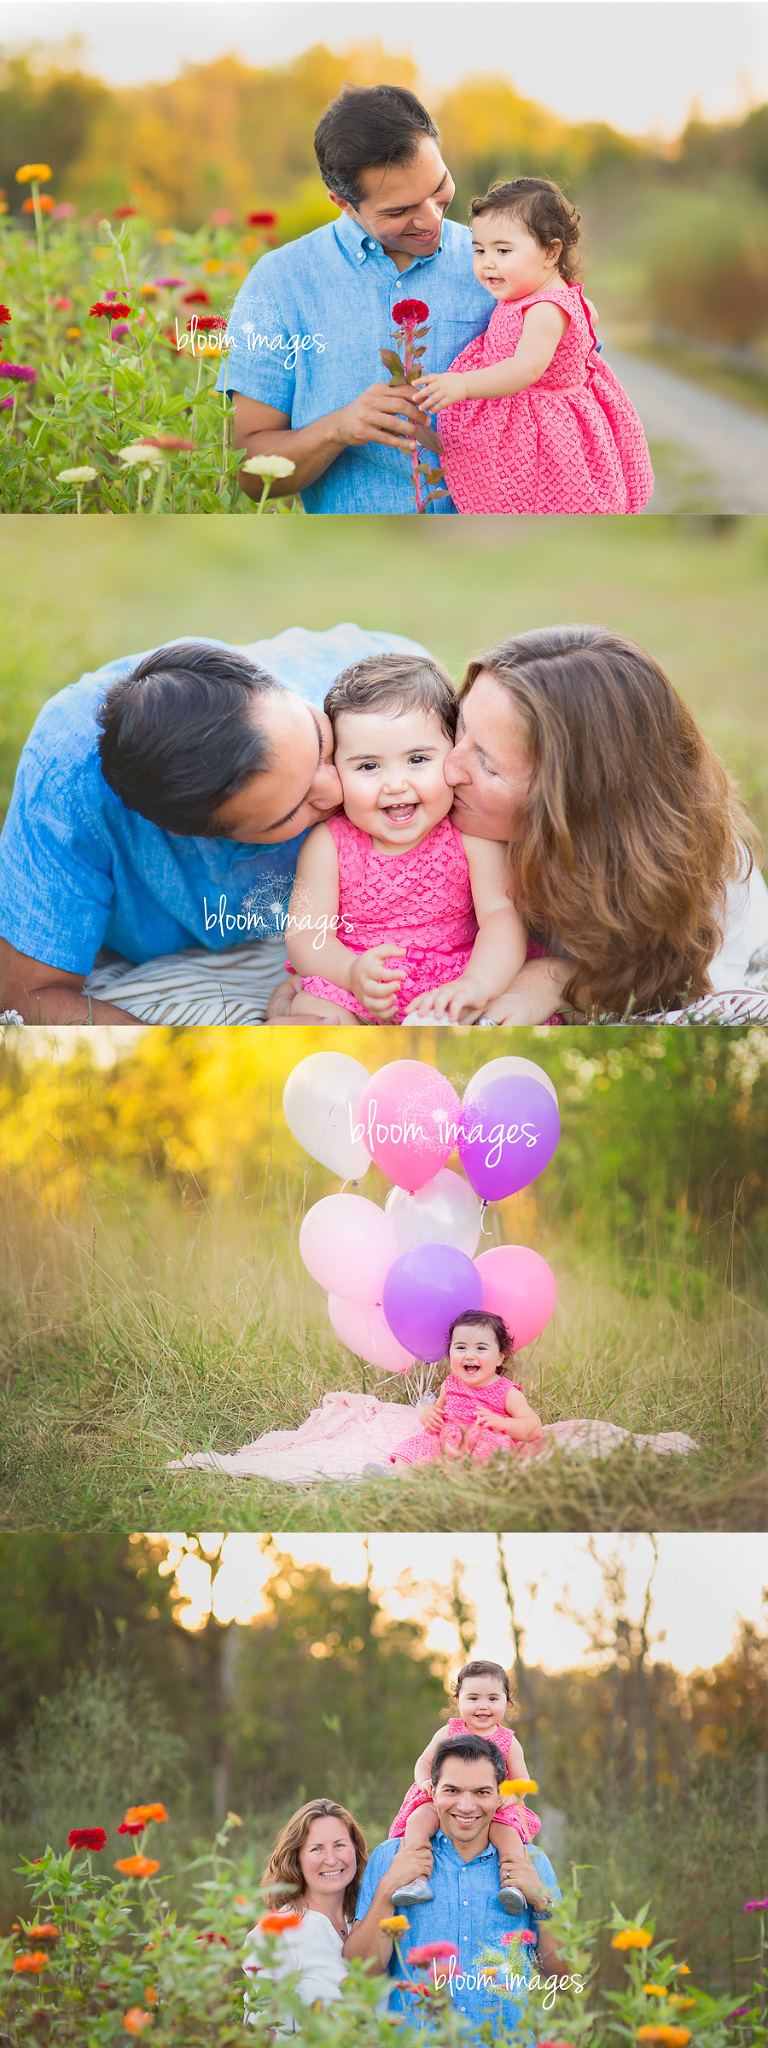 Baby-Photographer-Ashburn-VA-Family-Photo-Session-in-Northern-VA